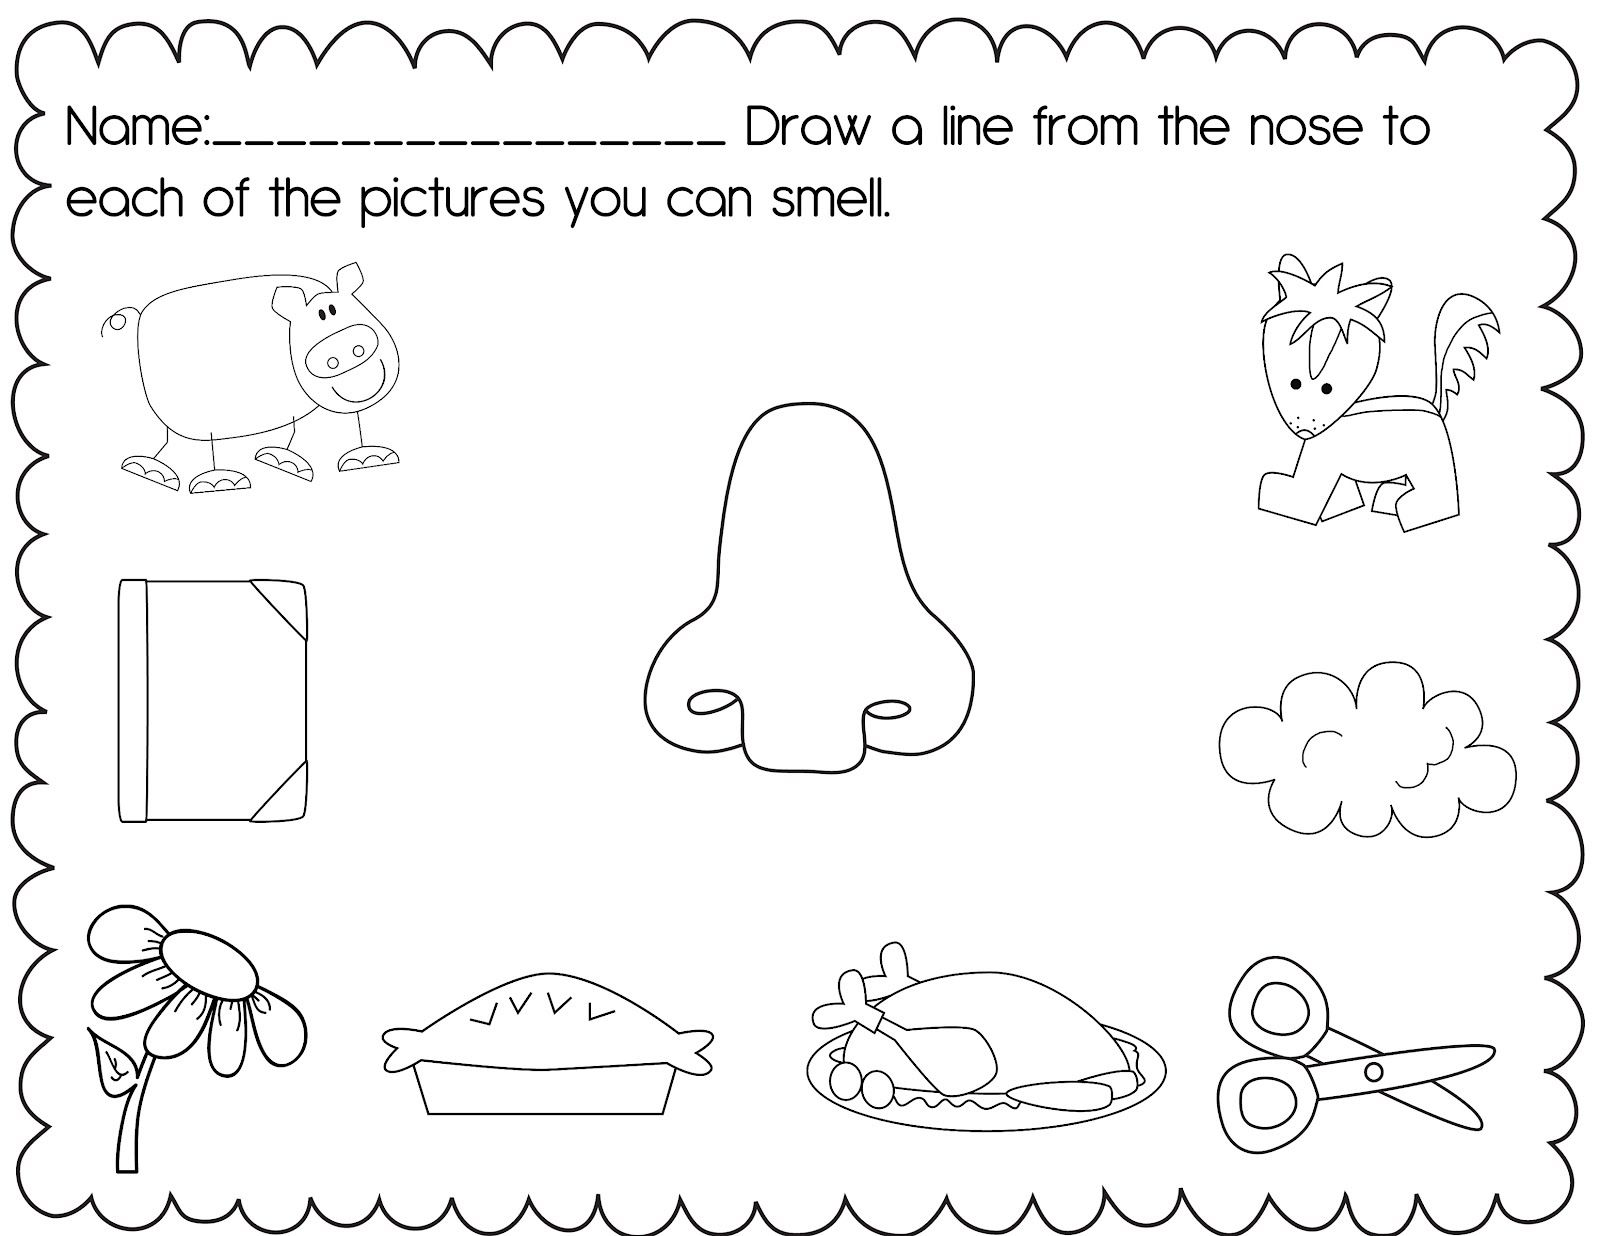 5 Senses Worksheets For Kindergarten – Five Senses Worksheet